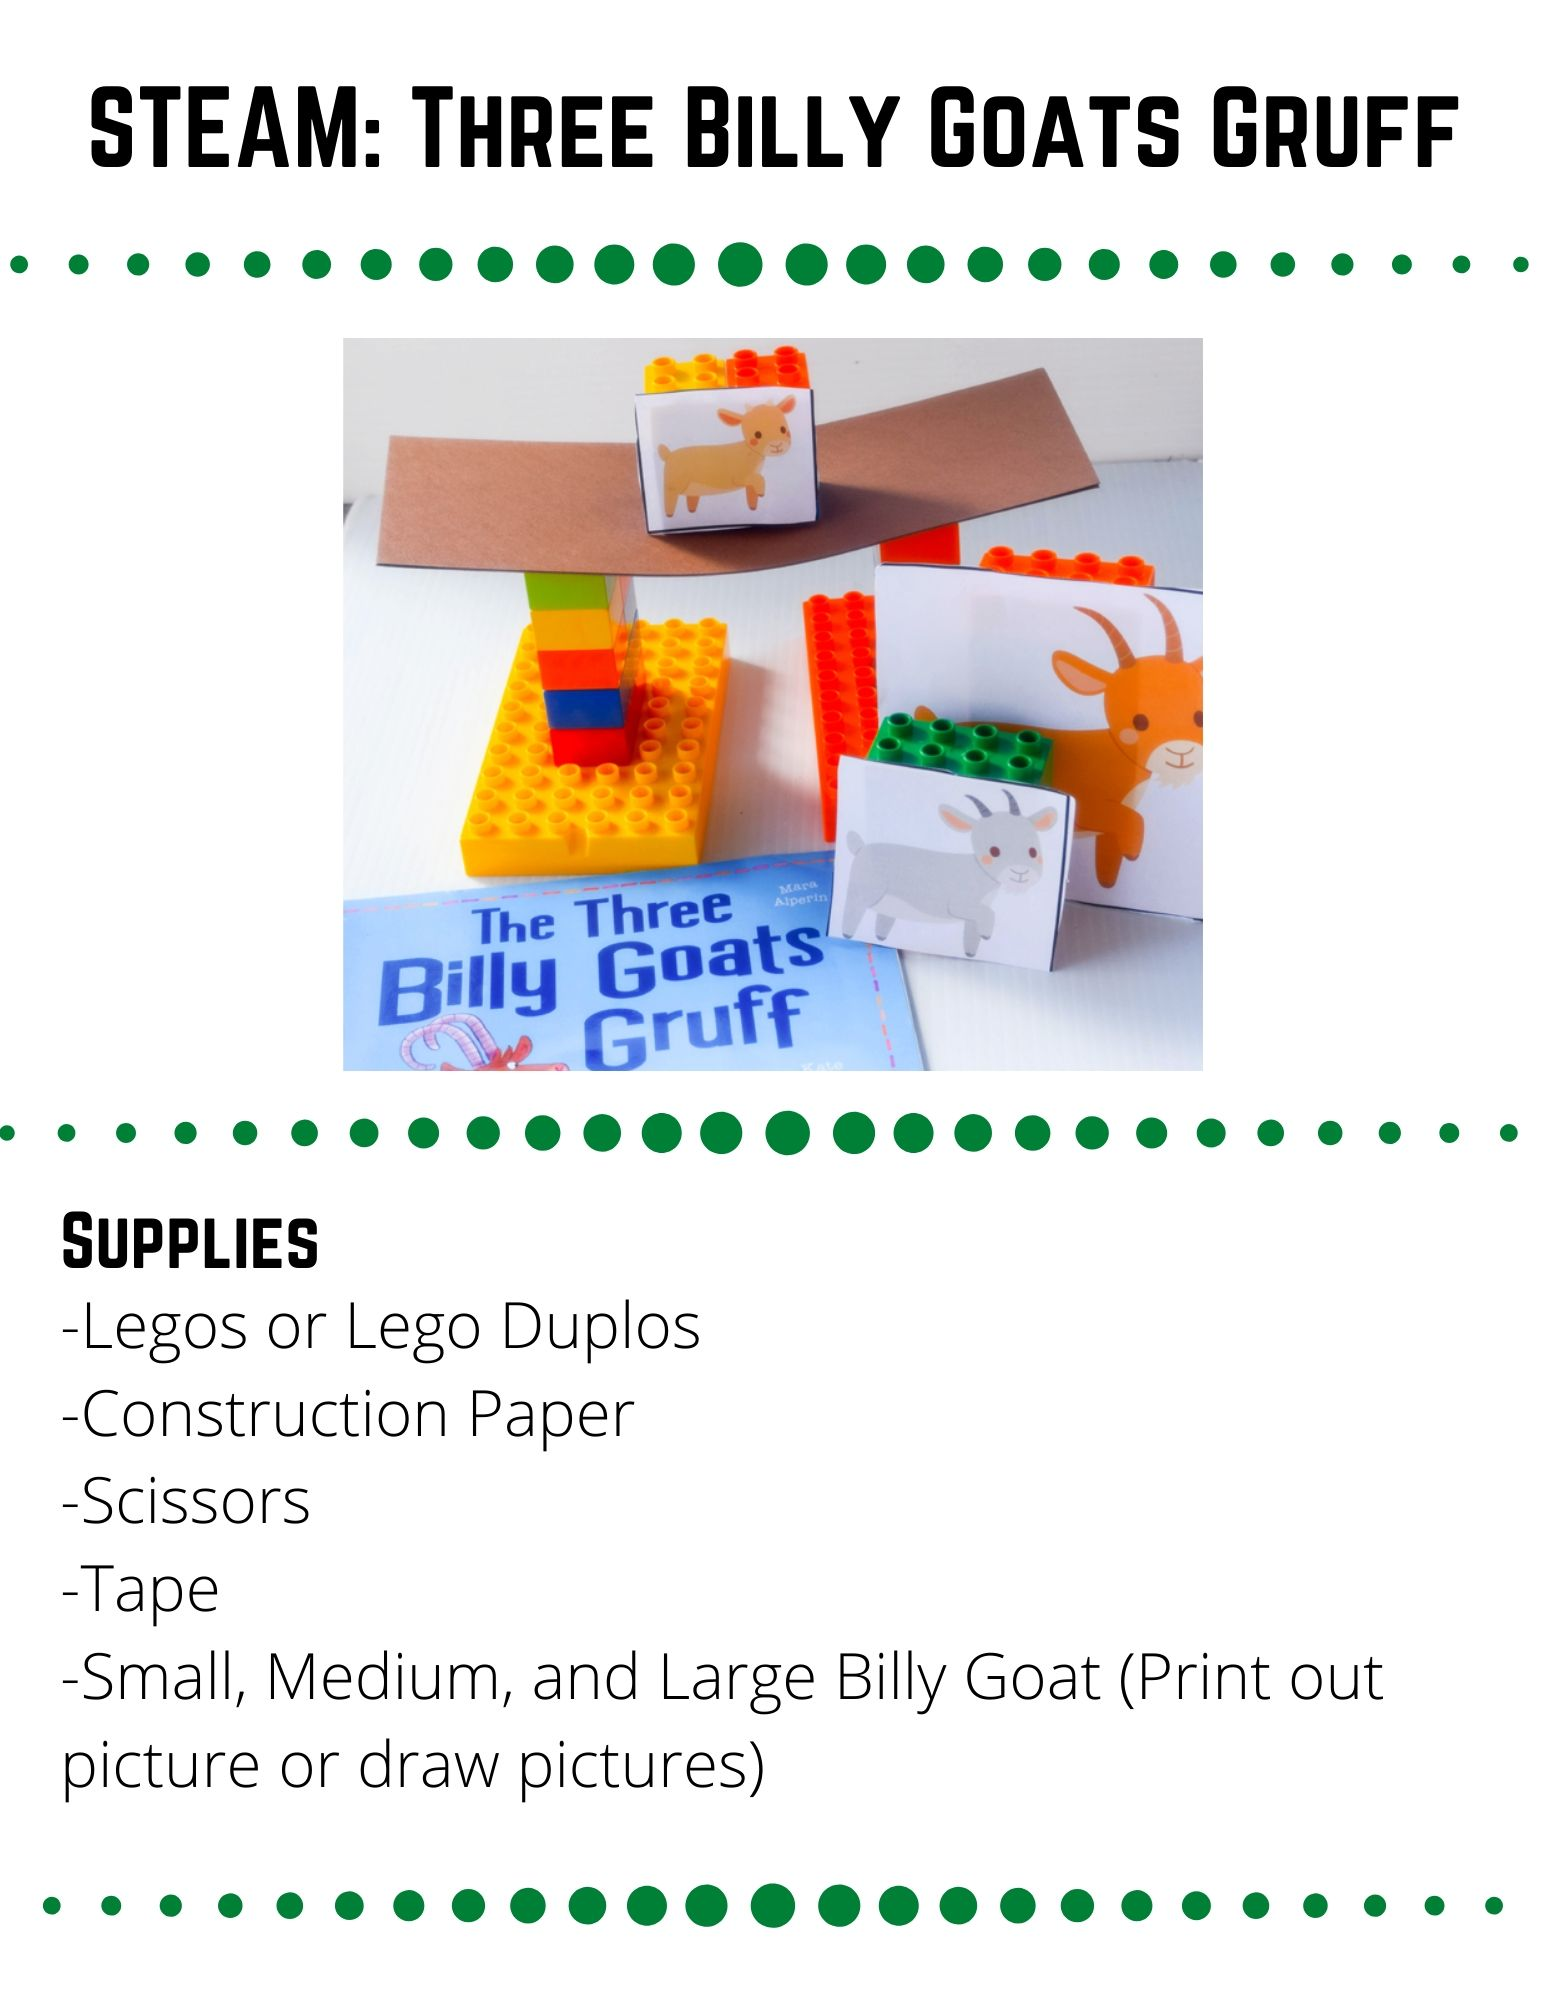 STEAM: Three Billy Goats Gruff. -Legos or Lego Duplos -Construction Paper -Scissors -Tape -Small, Medium, and Large Billy Goat (Print out picture or draw pictures). The Three Billy Goats need to cross the bridge, but is it strong enough to hold all three of them? Construct a bridge out of Legos and construction paper that can bring all 3 Billy Goats safely across the water. Build 3 block stacks: Small, medium, and large.  Tape each goat onto the stack that matches its size.  Use the internet to look at examples of bridges.  Are there different kinds? What kind do you think will work best?  Think about the bridge you are going to build.  Make a sketch of it before you begin. When you are ready, build your bridge using Legos as the base and paper for the bridge.  Set your goats on your bridge one at a time.  Does it hold up?  How can you make your paper stronger?  How does your bridge need to change for each goat? Build a bridge using only Legos. Or try building a bridge with carboard.  Which materials work the best? Why?    See how much weight your bridge can hold.  Can it hold all three billy goats at the same time?